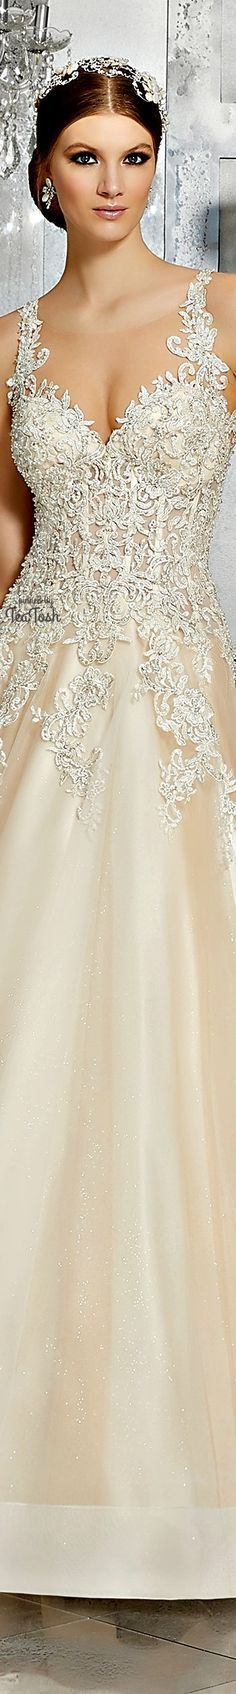 ❇Téa Tosh❇ (Front) Mahala Wedding Dress Romantic Princess, Princess Wedding, Beautiful Wedding Gowns, Beautiful Bride, Older Bride, Weeding Dress, Here Comes The Bride, Pretty Woman, Bridal Gowns